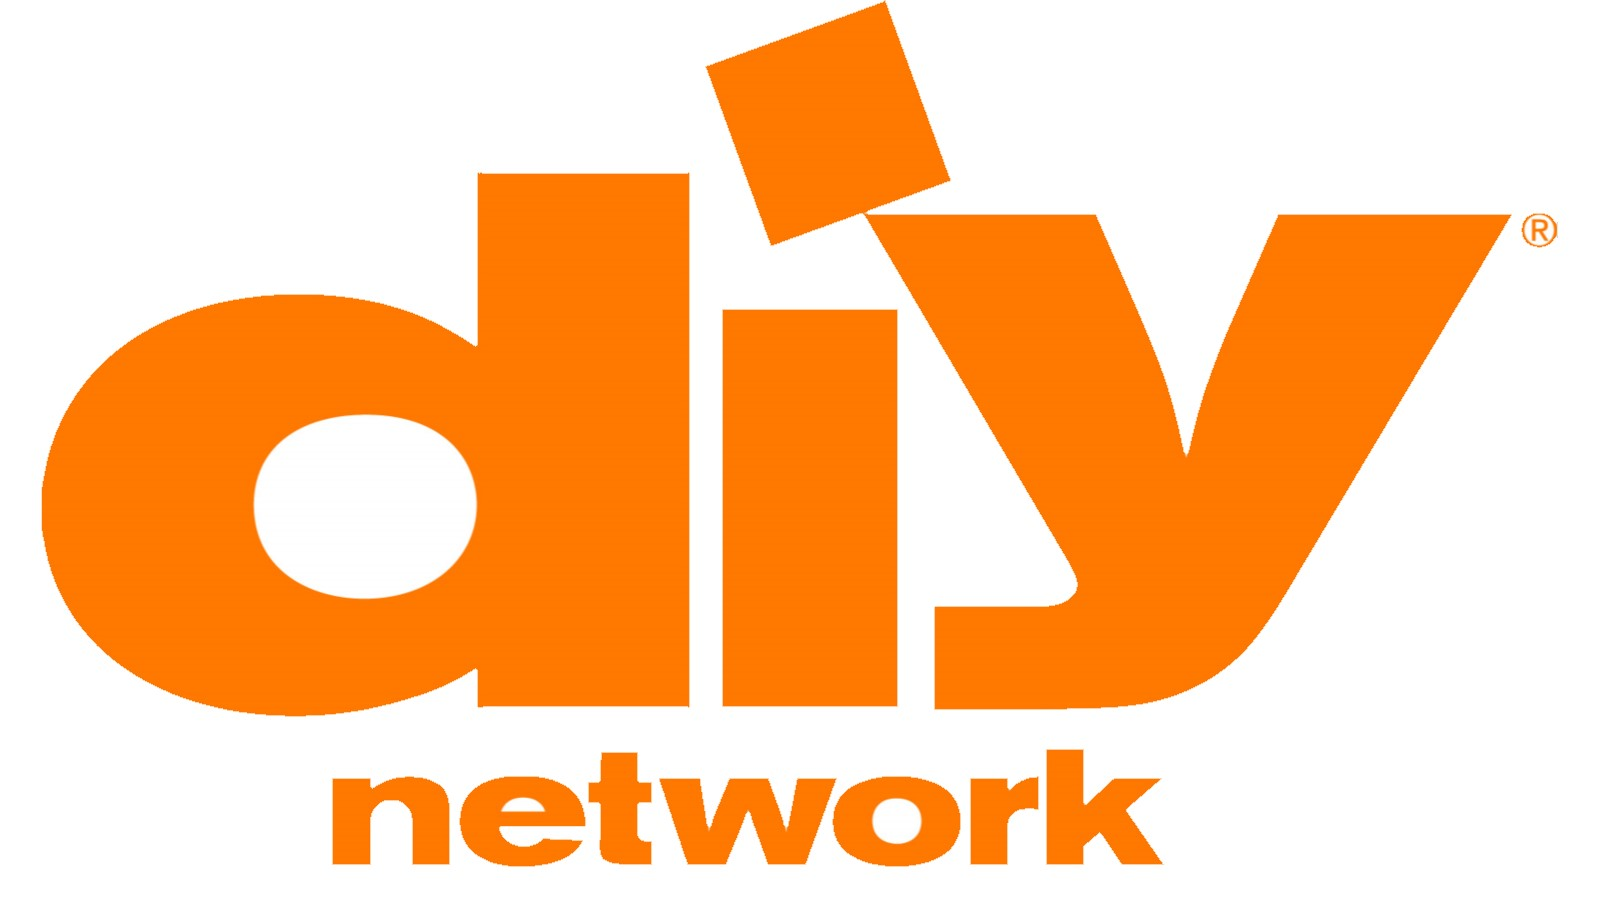 How to watch diy network without cable get new ideas for future how to watch diy network without cable get new ideas for future projects solutioingenieria Image collections